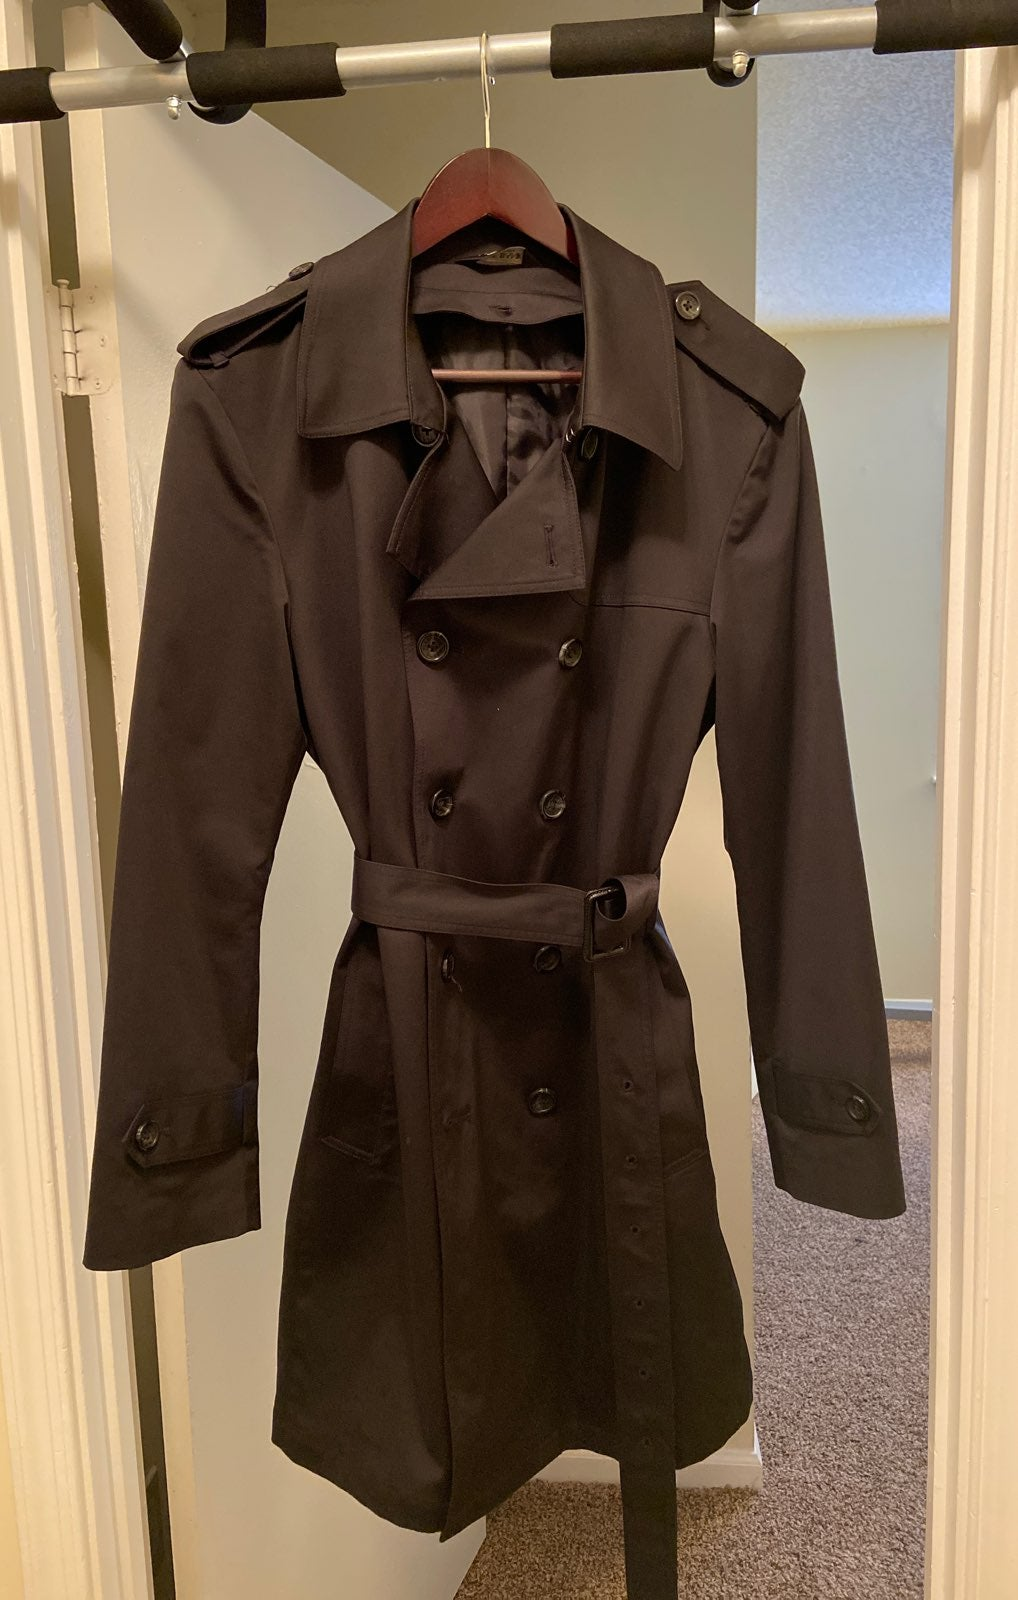 Jos A. Bank Trench Coat, Size 38S